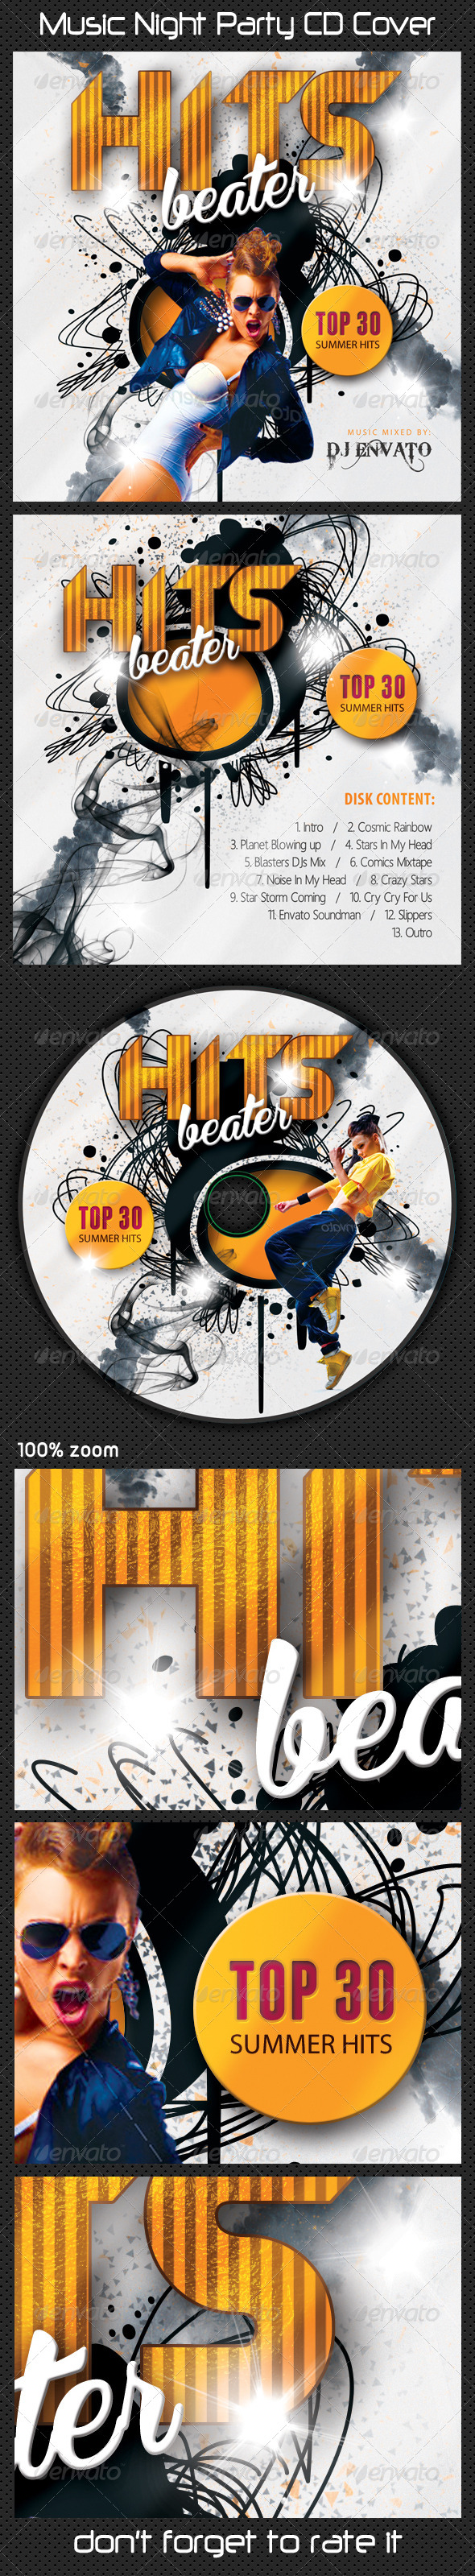 GraphicRiver Music Night Party CD Cover 08 8523893